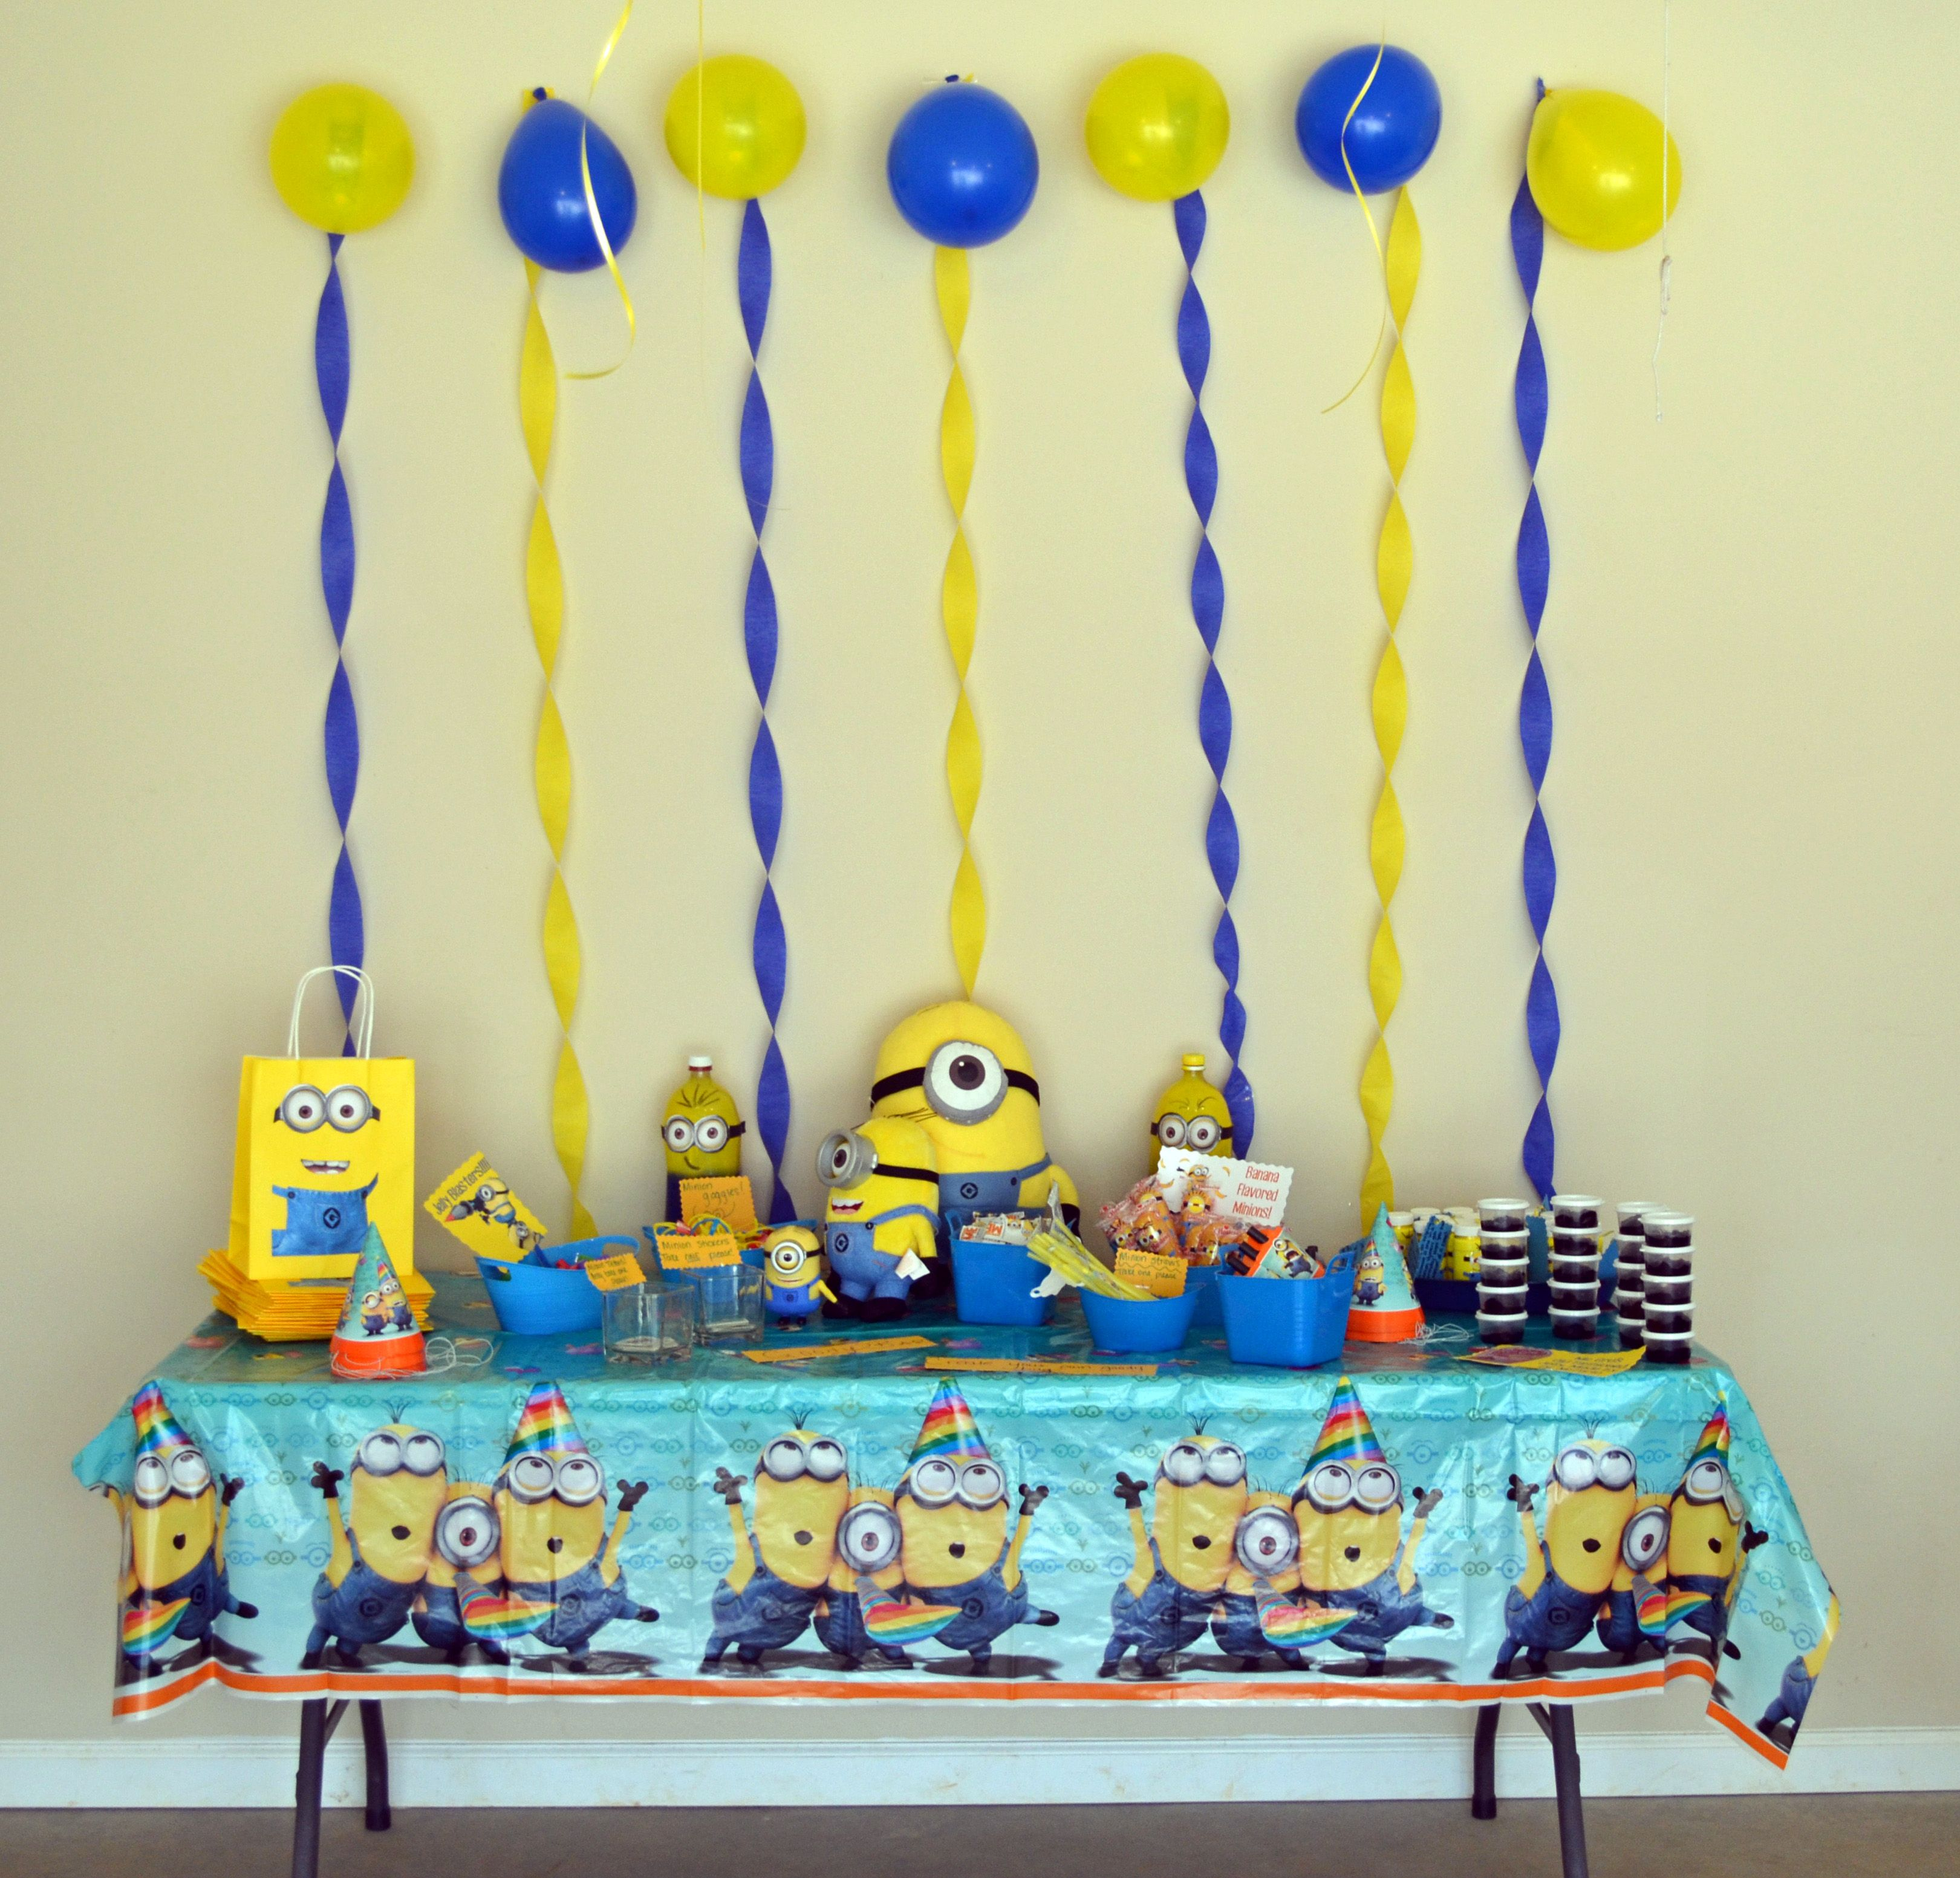 Despicable me minion birthday party ideas instead of pre